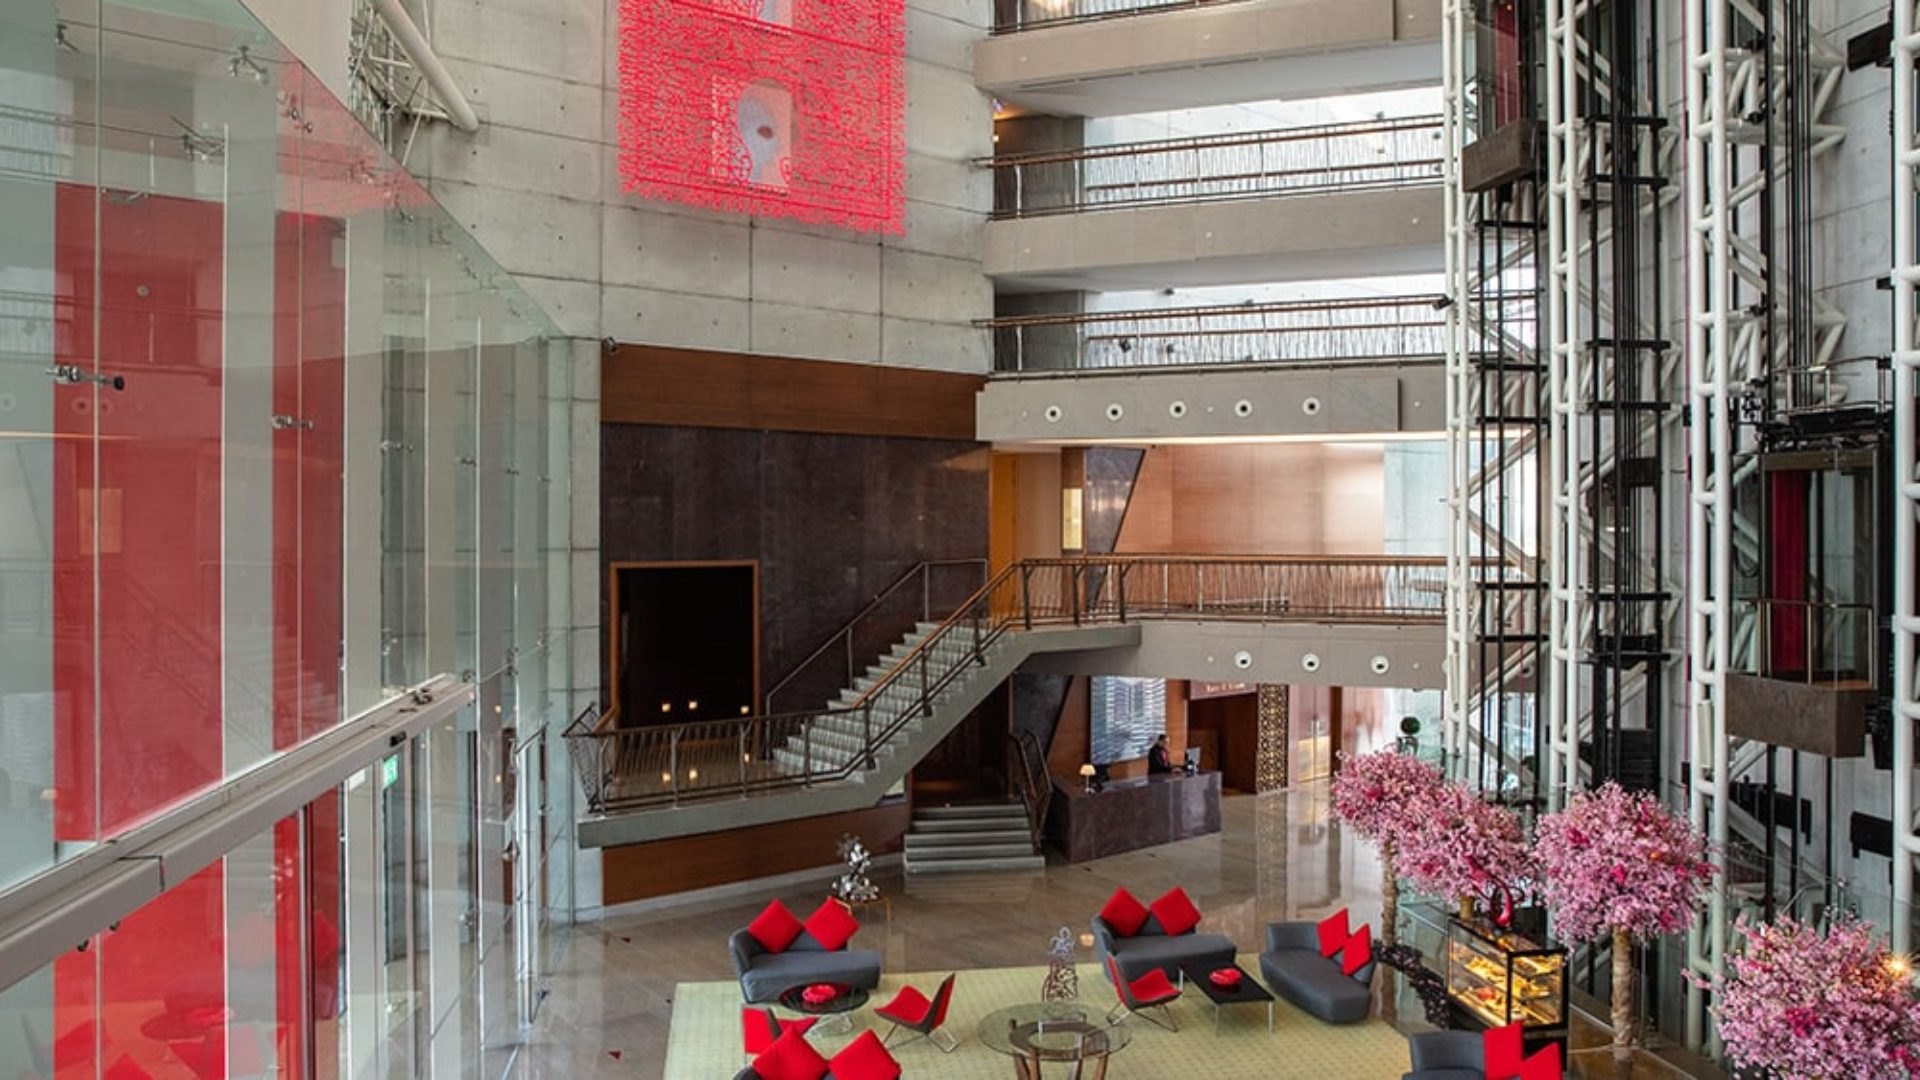 Lobby with art at Jumeirah Creekside